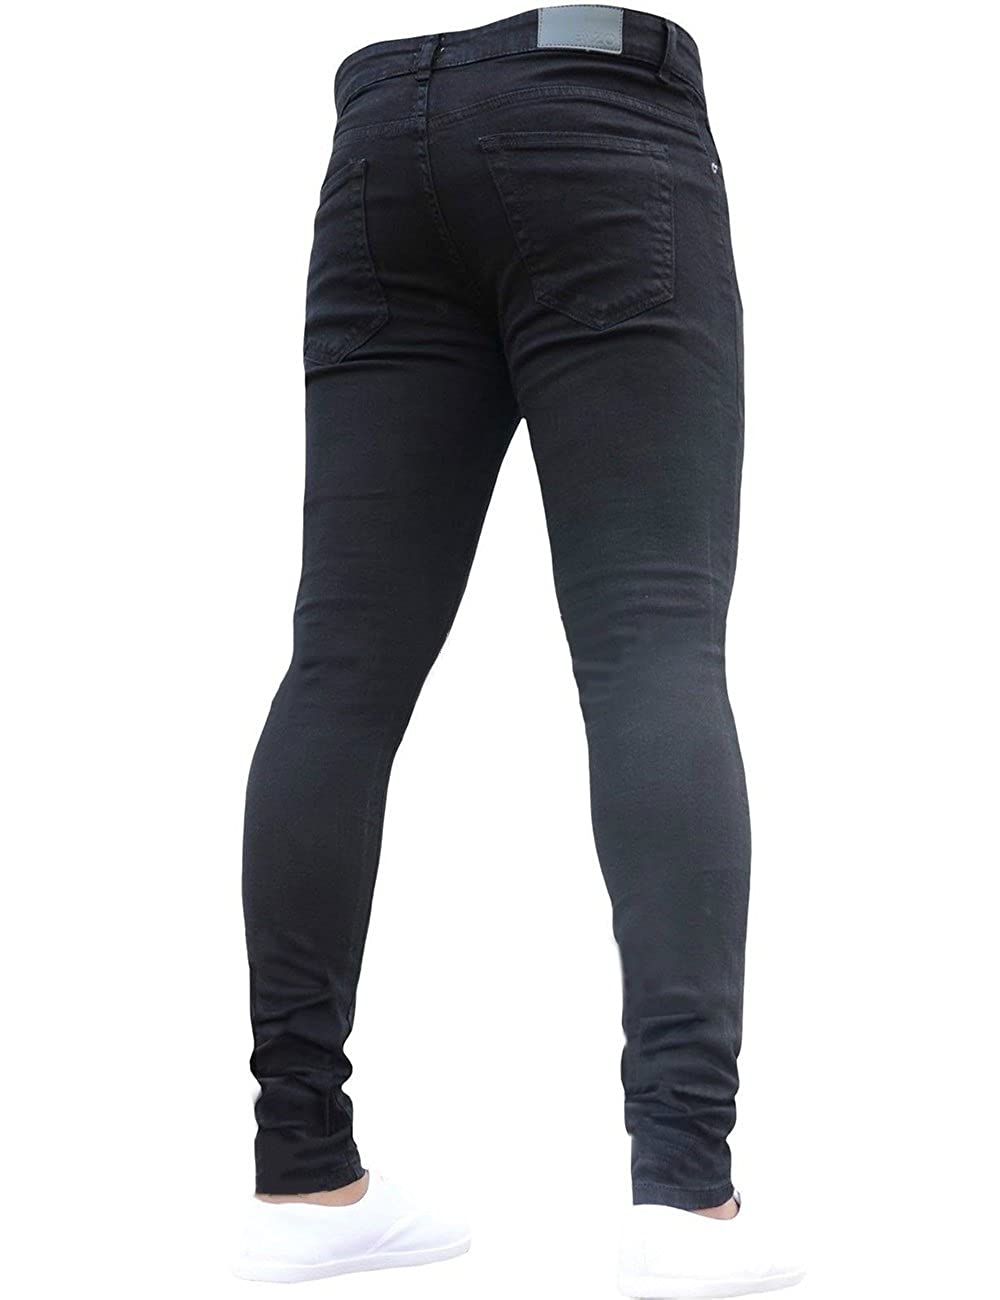 new products for hot-selling discount on feet images of SOMTHRON Men's Stretchy Slim Fit Denim Joggers Jeans Low Rise Long Skinny  Cotton Denim Jeans Pants